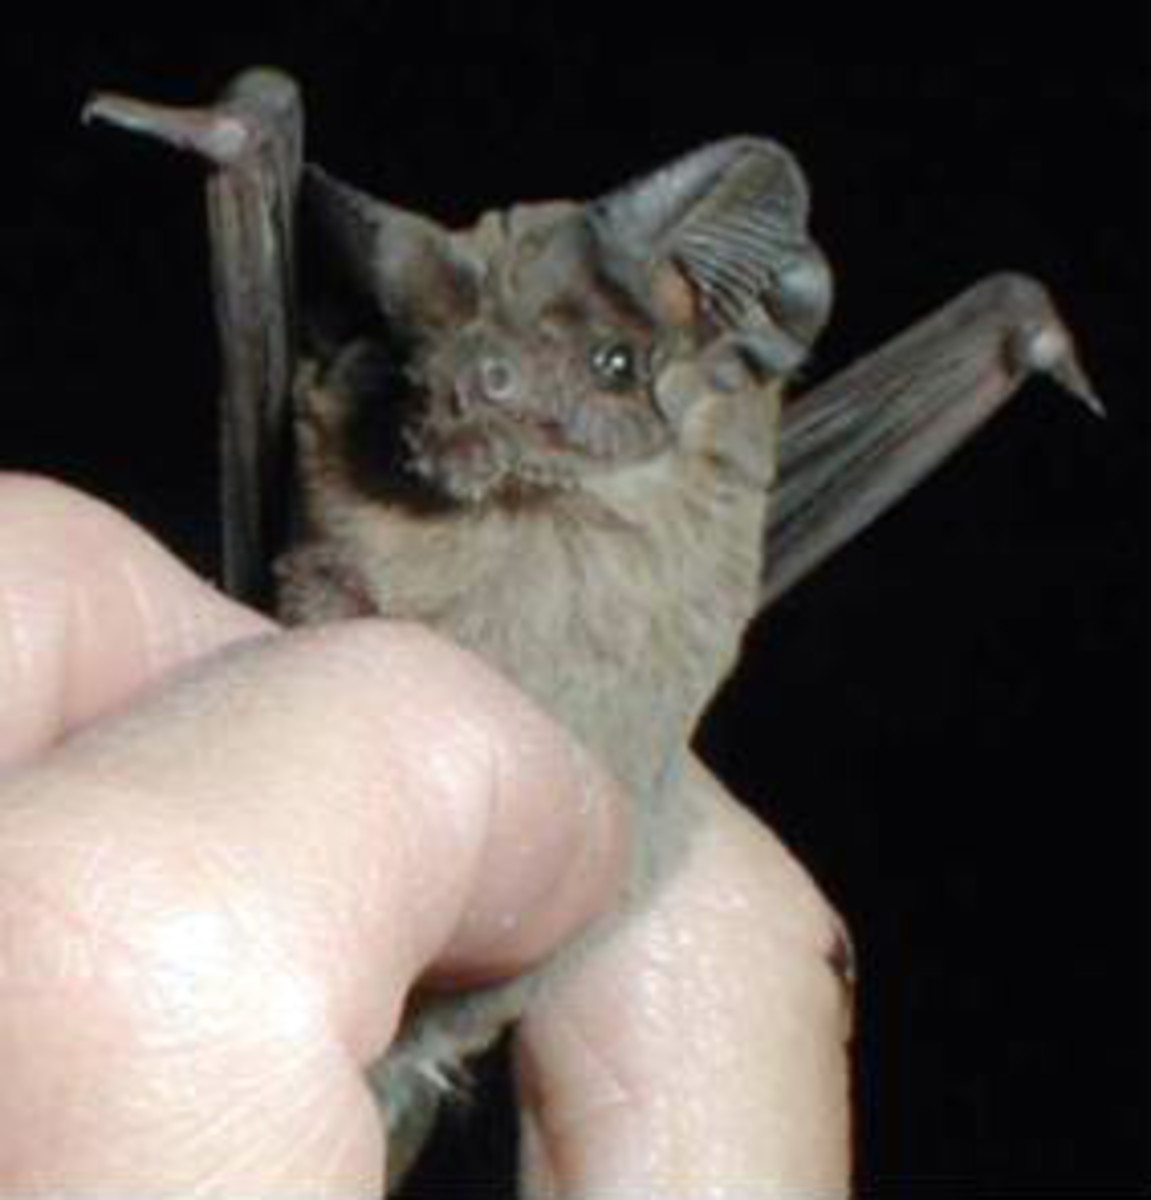 A Mexican free-tailed bat viewed up close.  The bat is abundant across Florida and indeed, North America.  It is also the official state bat of both Oklahoma and Texas.  An image of a Mexican free-tailed bat is also used for the Bacardi rum brand.